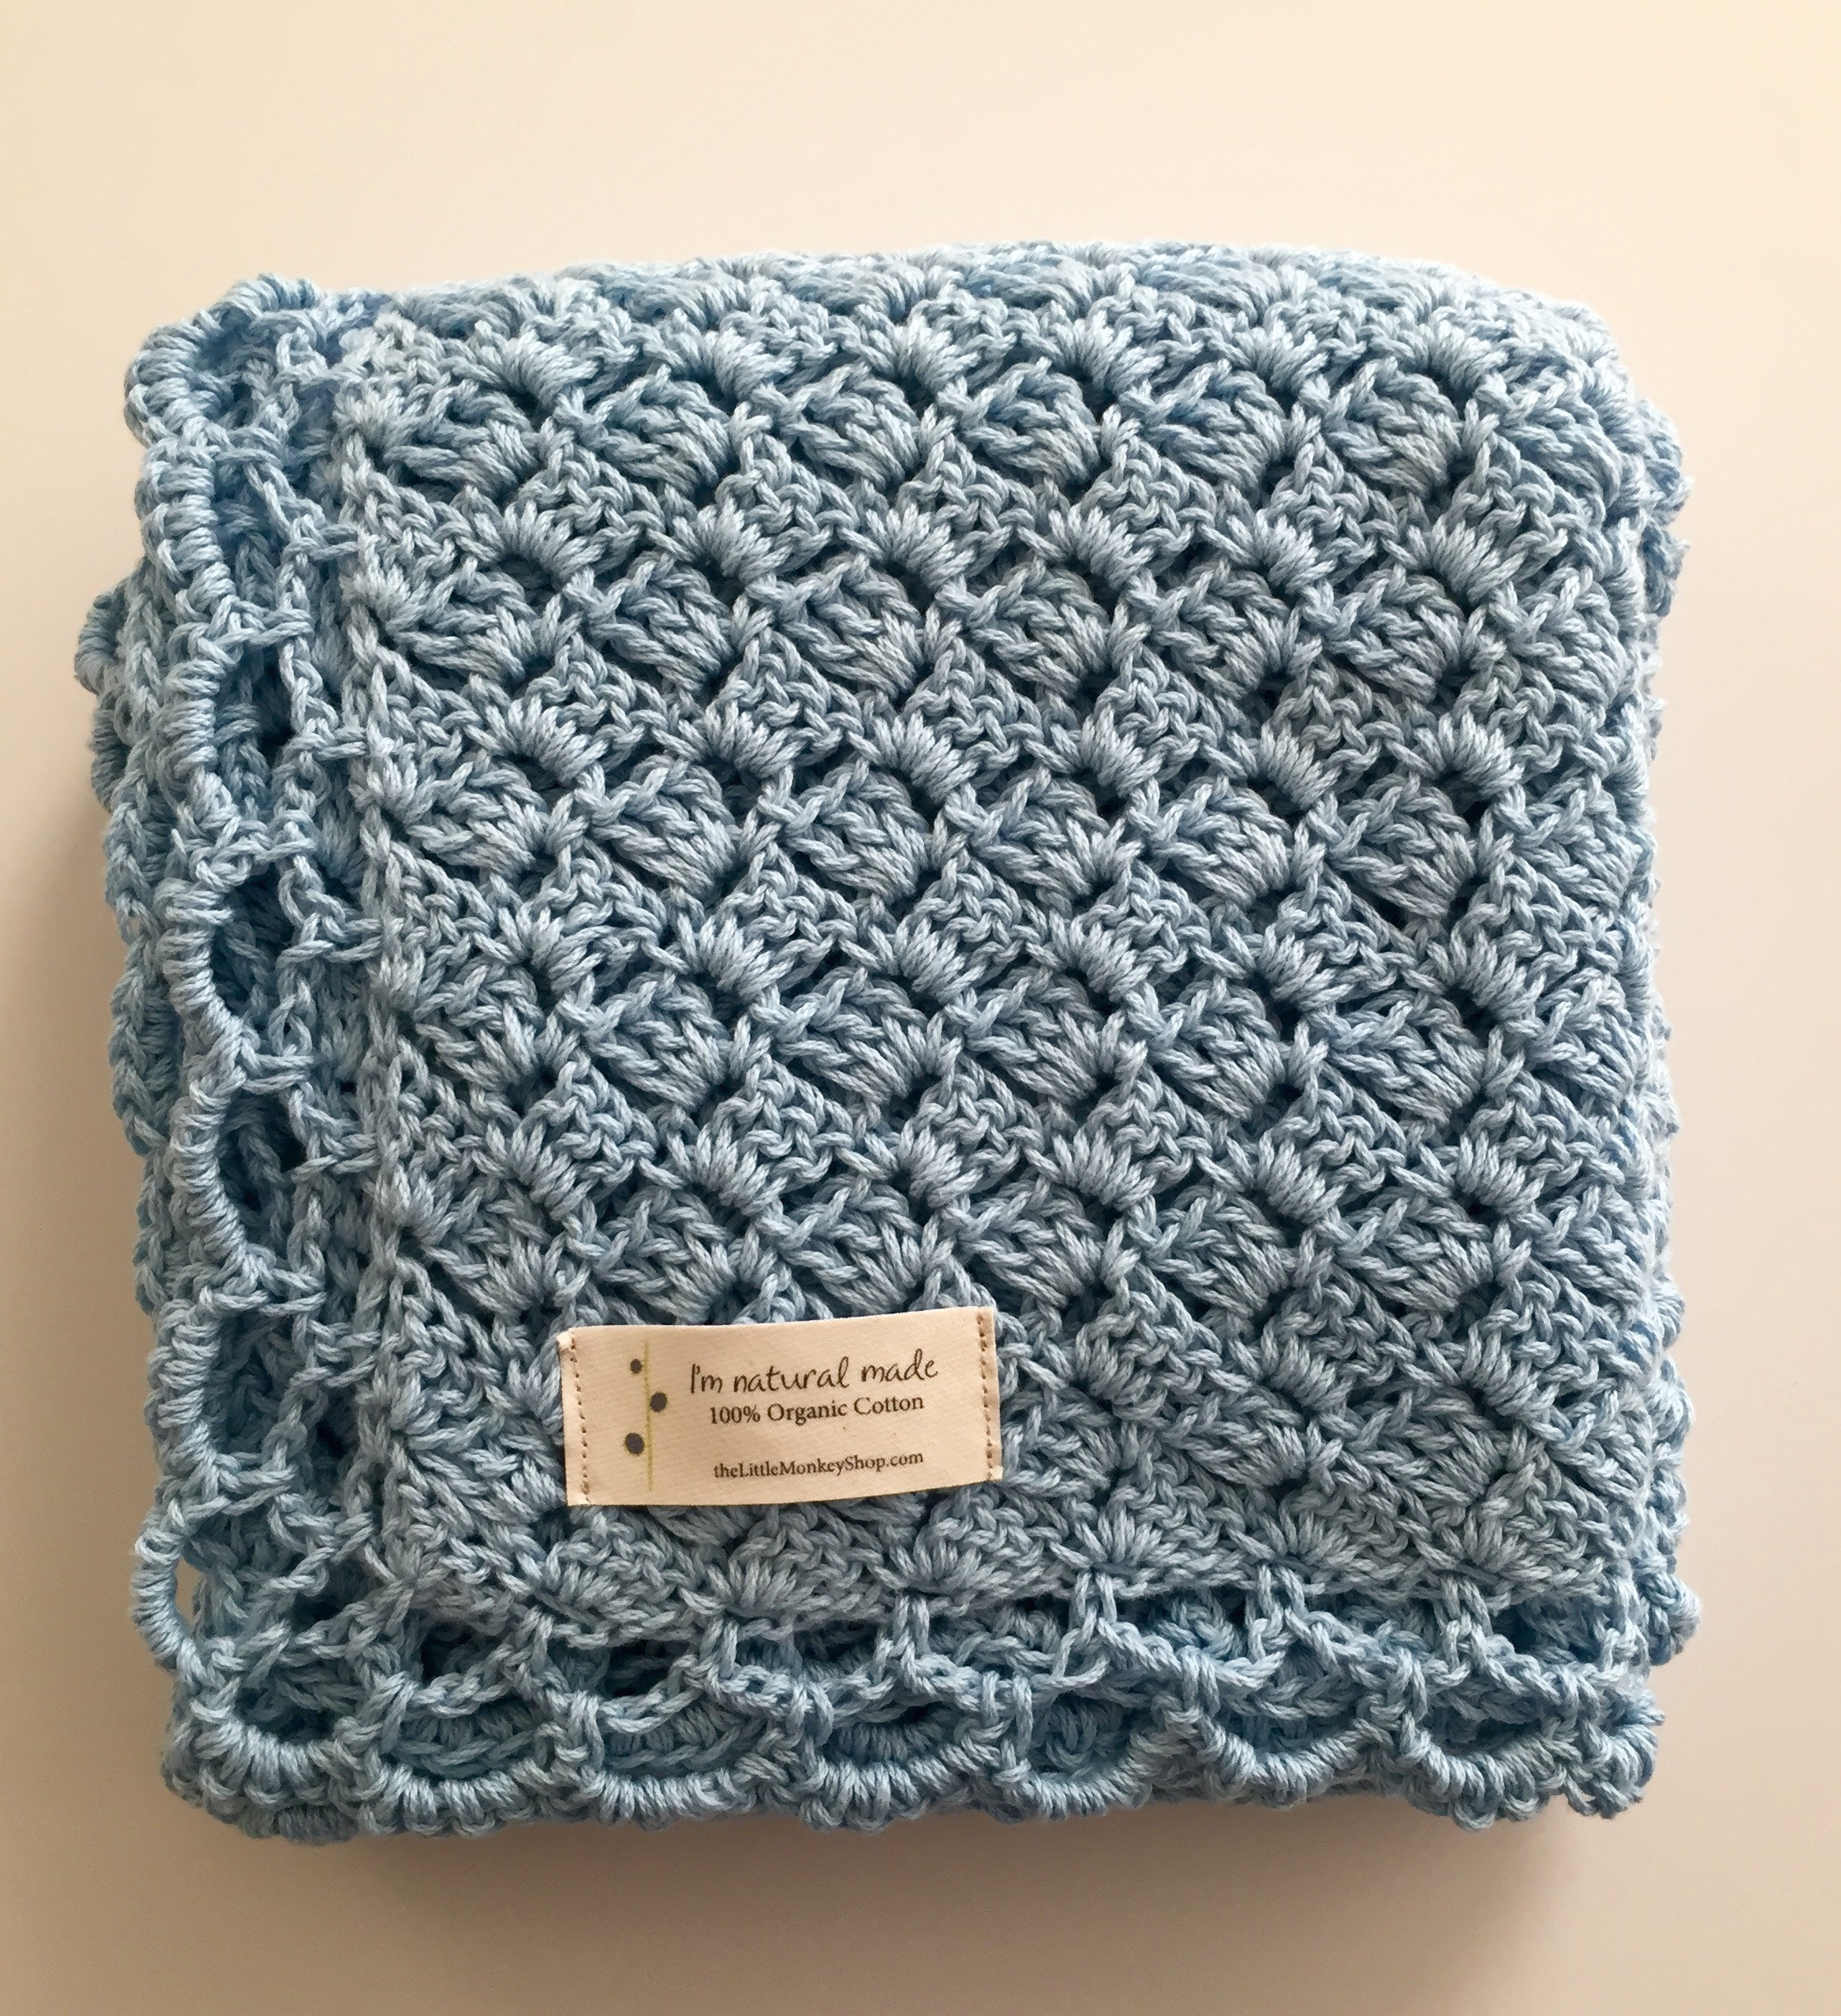 Crochet Patterns New Crochet Pattern Baby Blue Baby Blanket Of Charming 50 Models Crochet Patterns